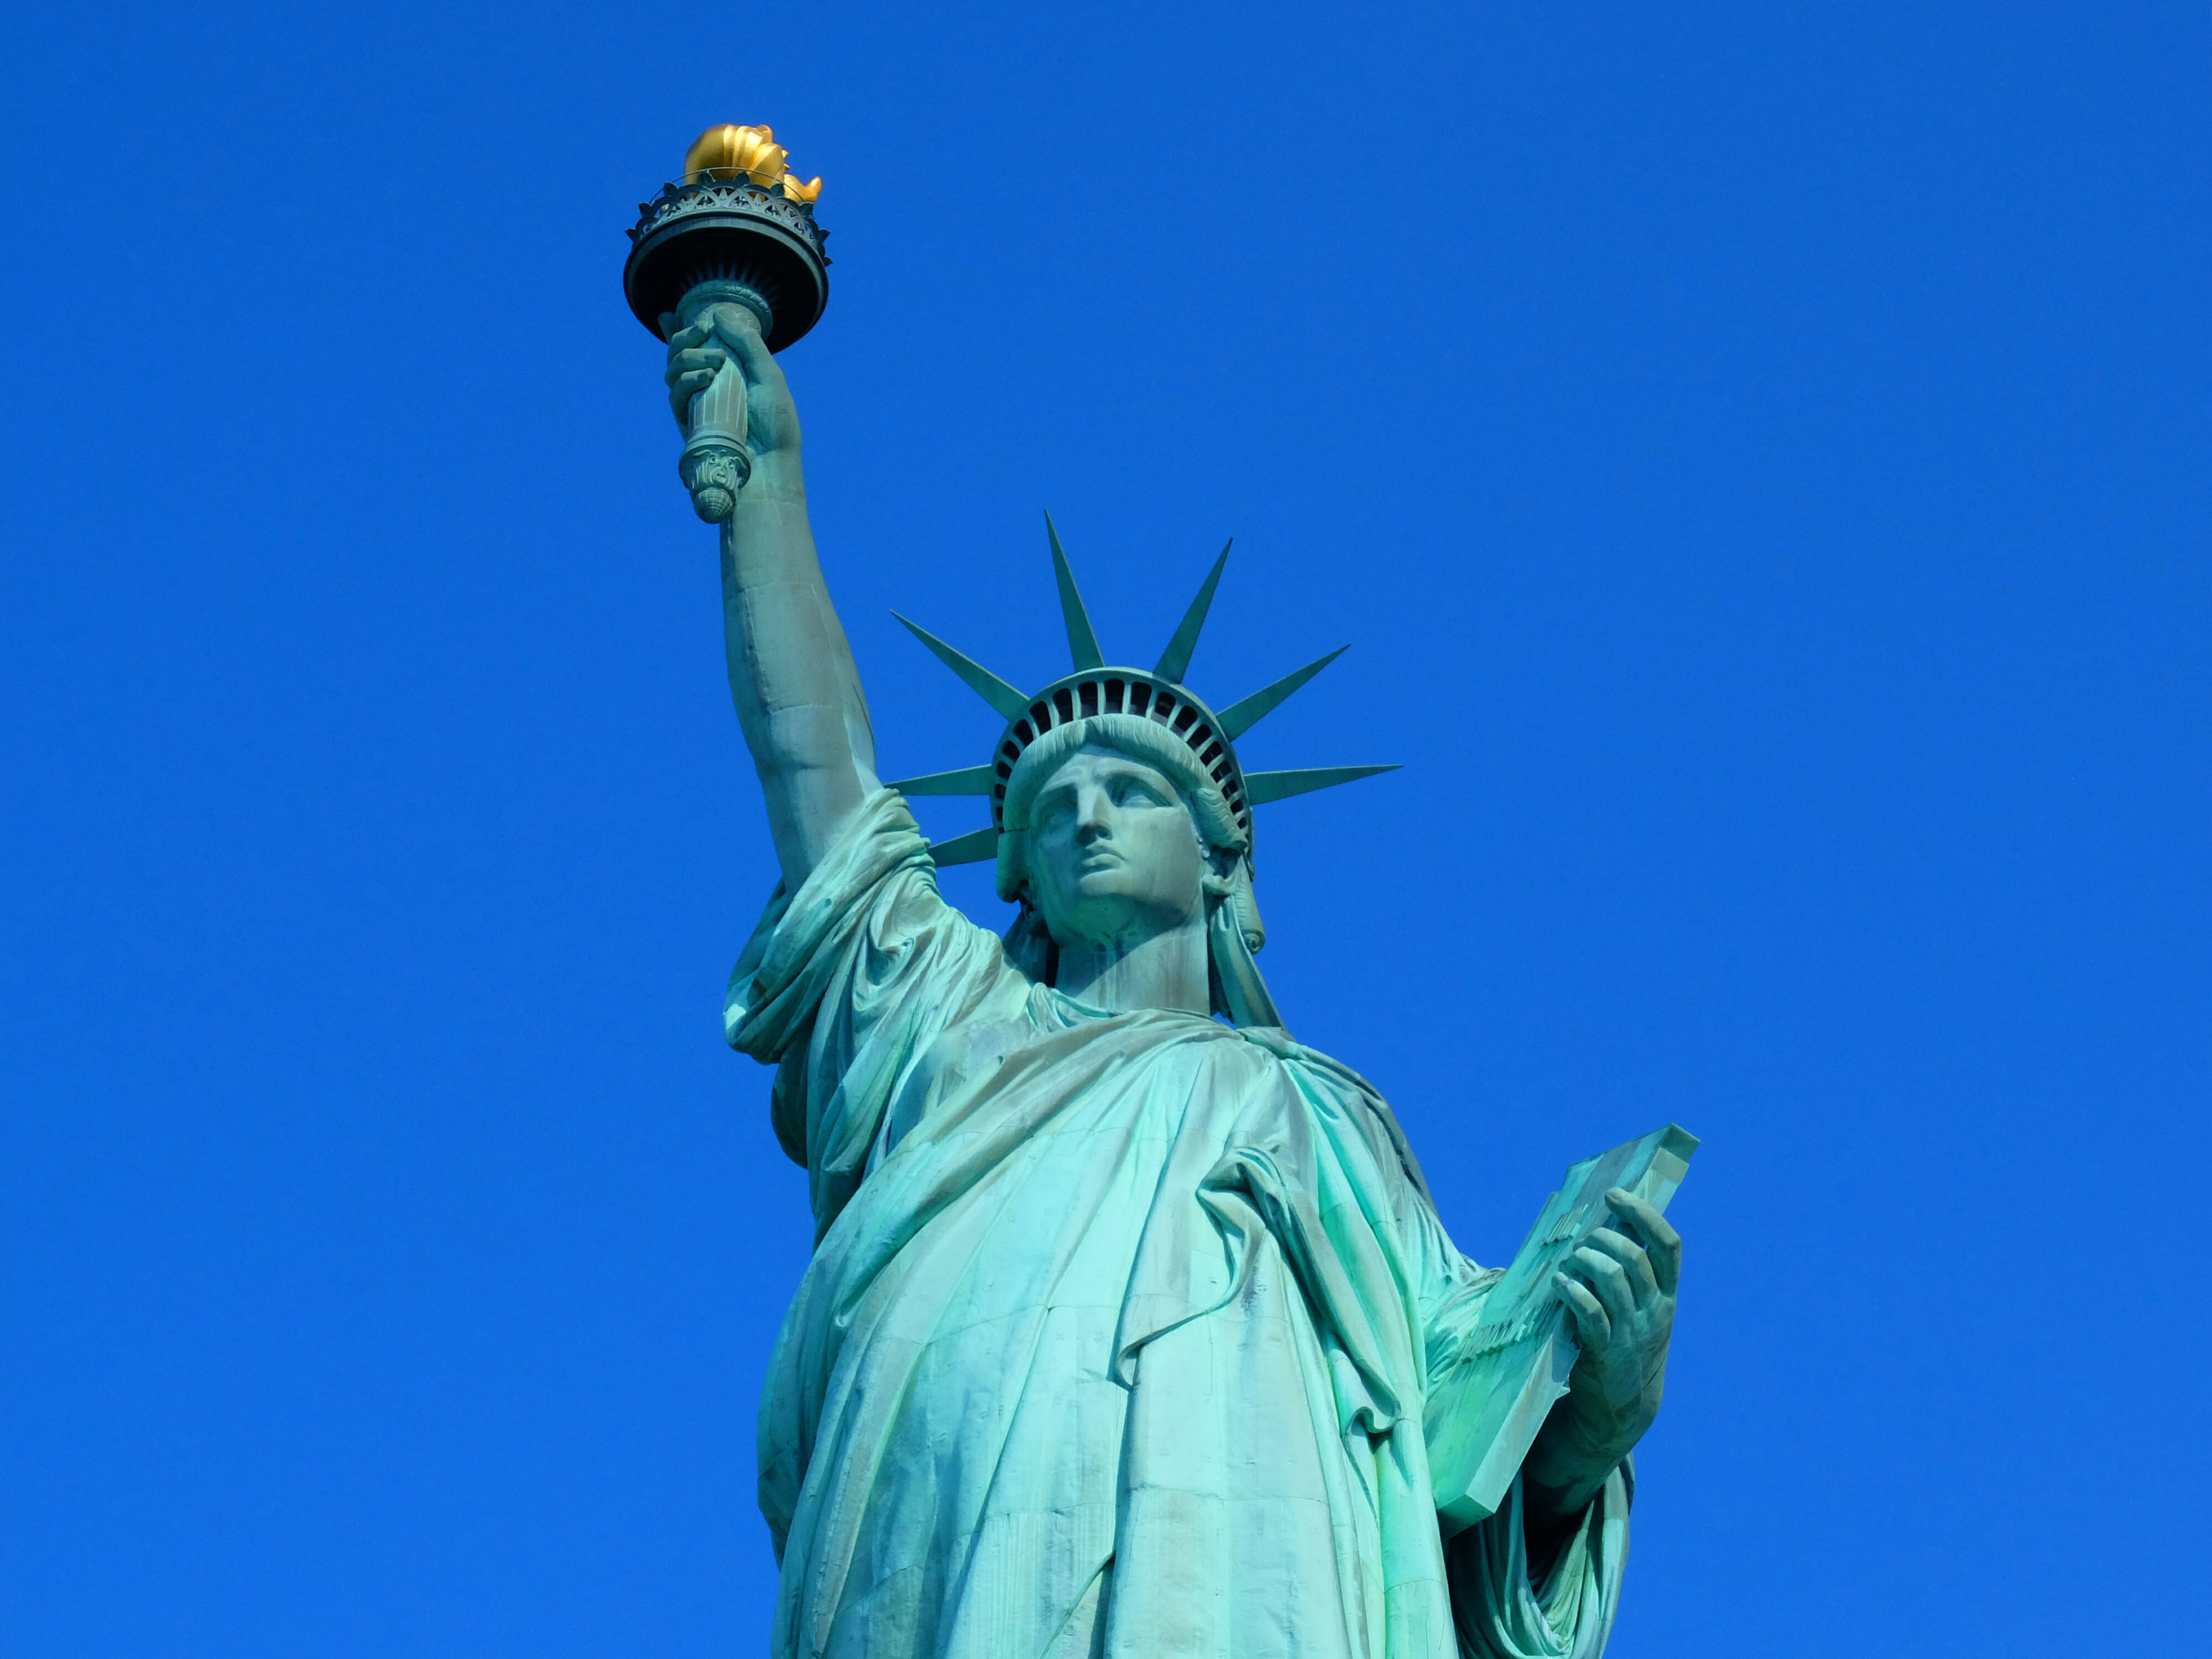 Statue of Liberty NYC High Quality Wallpaper